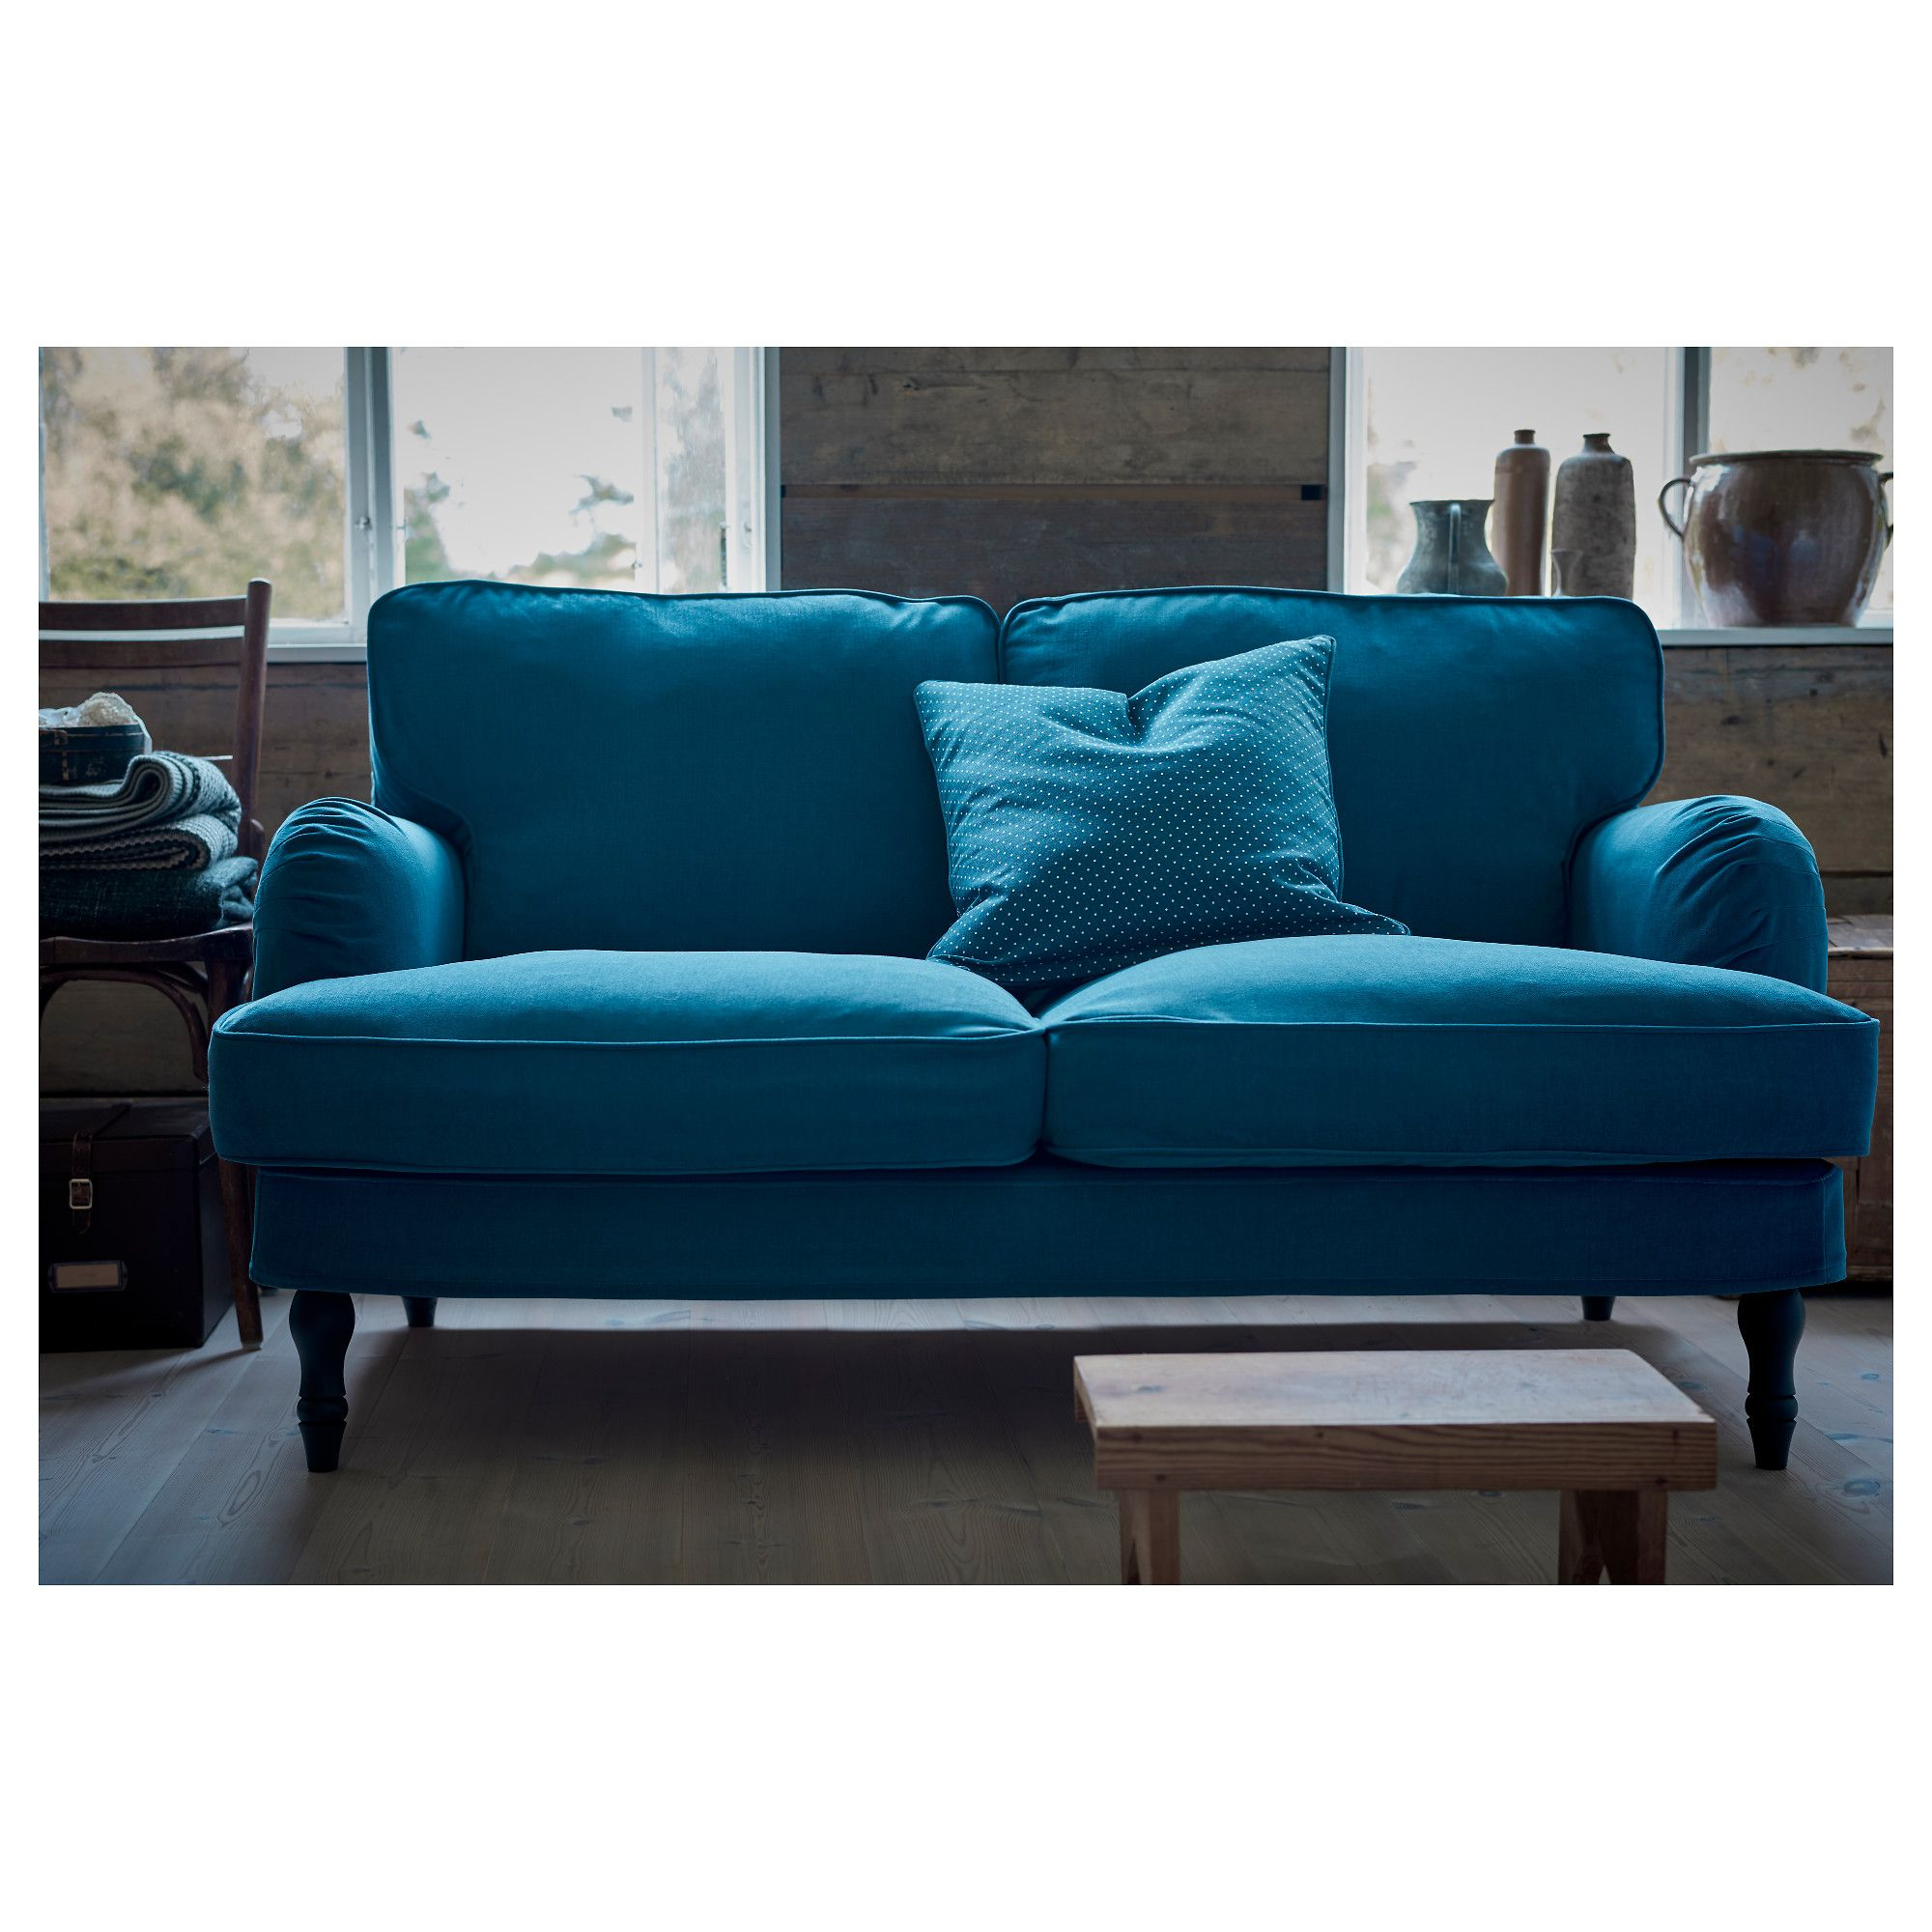 Furniture and Home Furnishings Ikea loveseat, Affordable